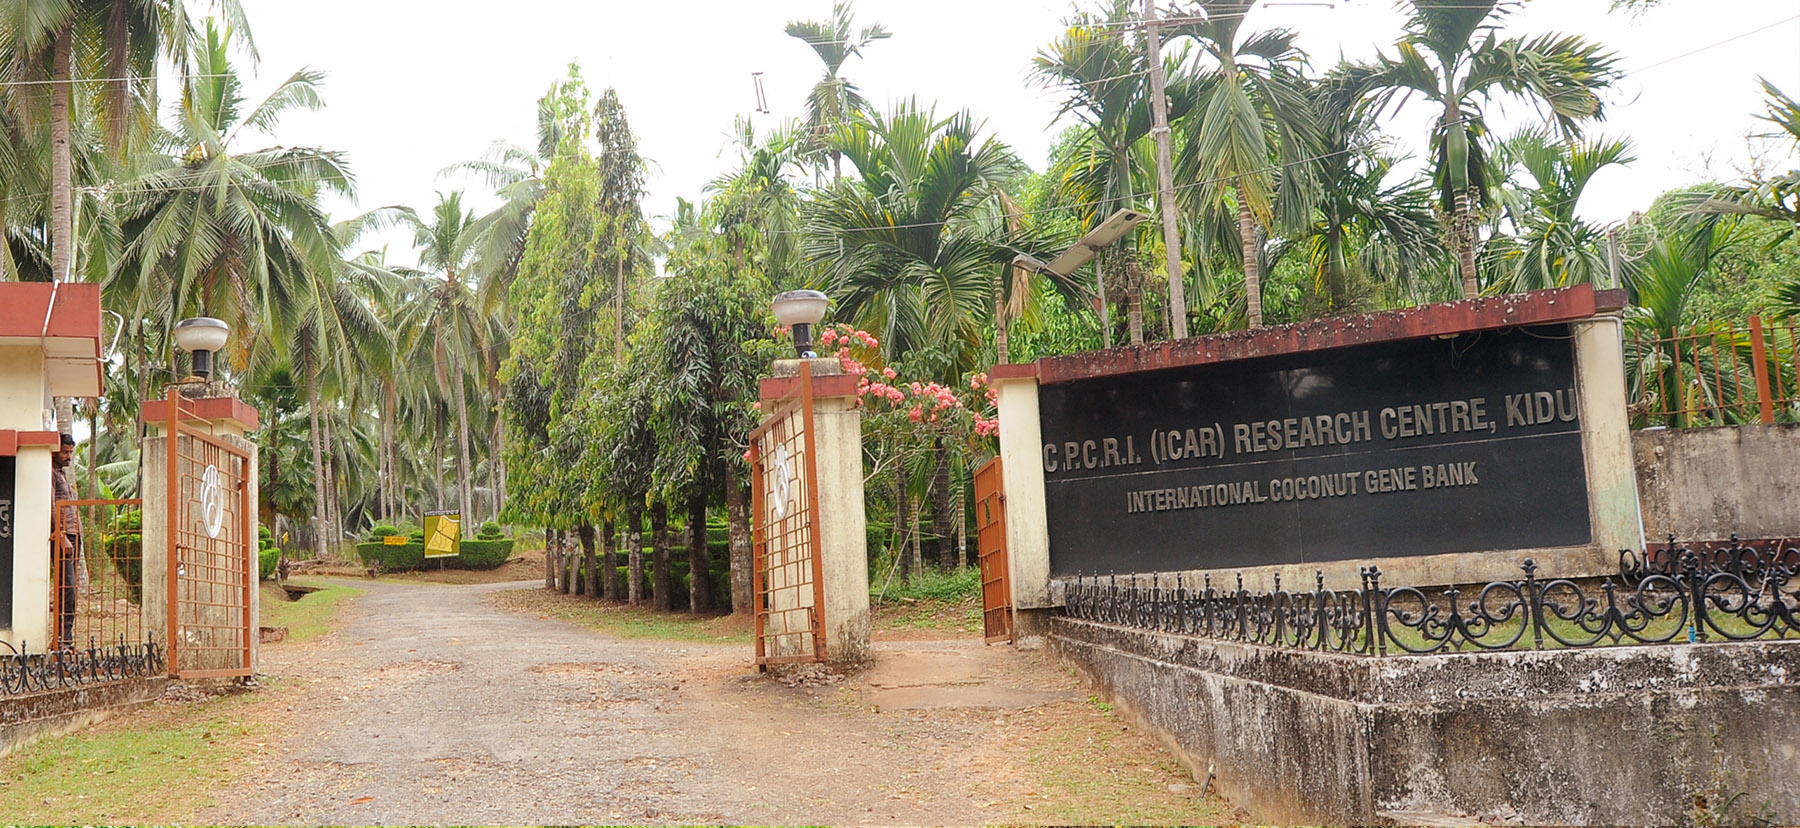 ICAR - CPCRI Research Centre, Kidu